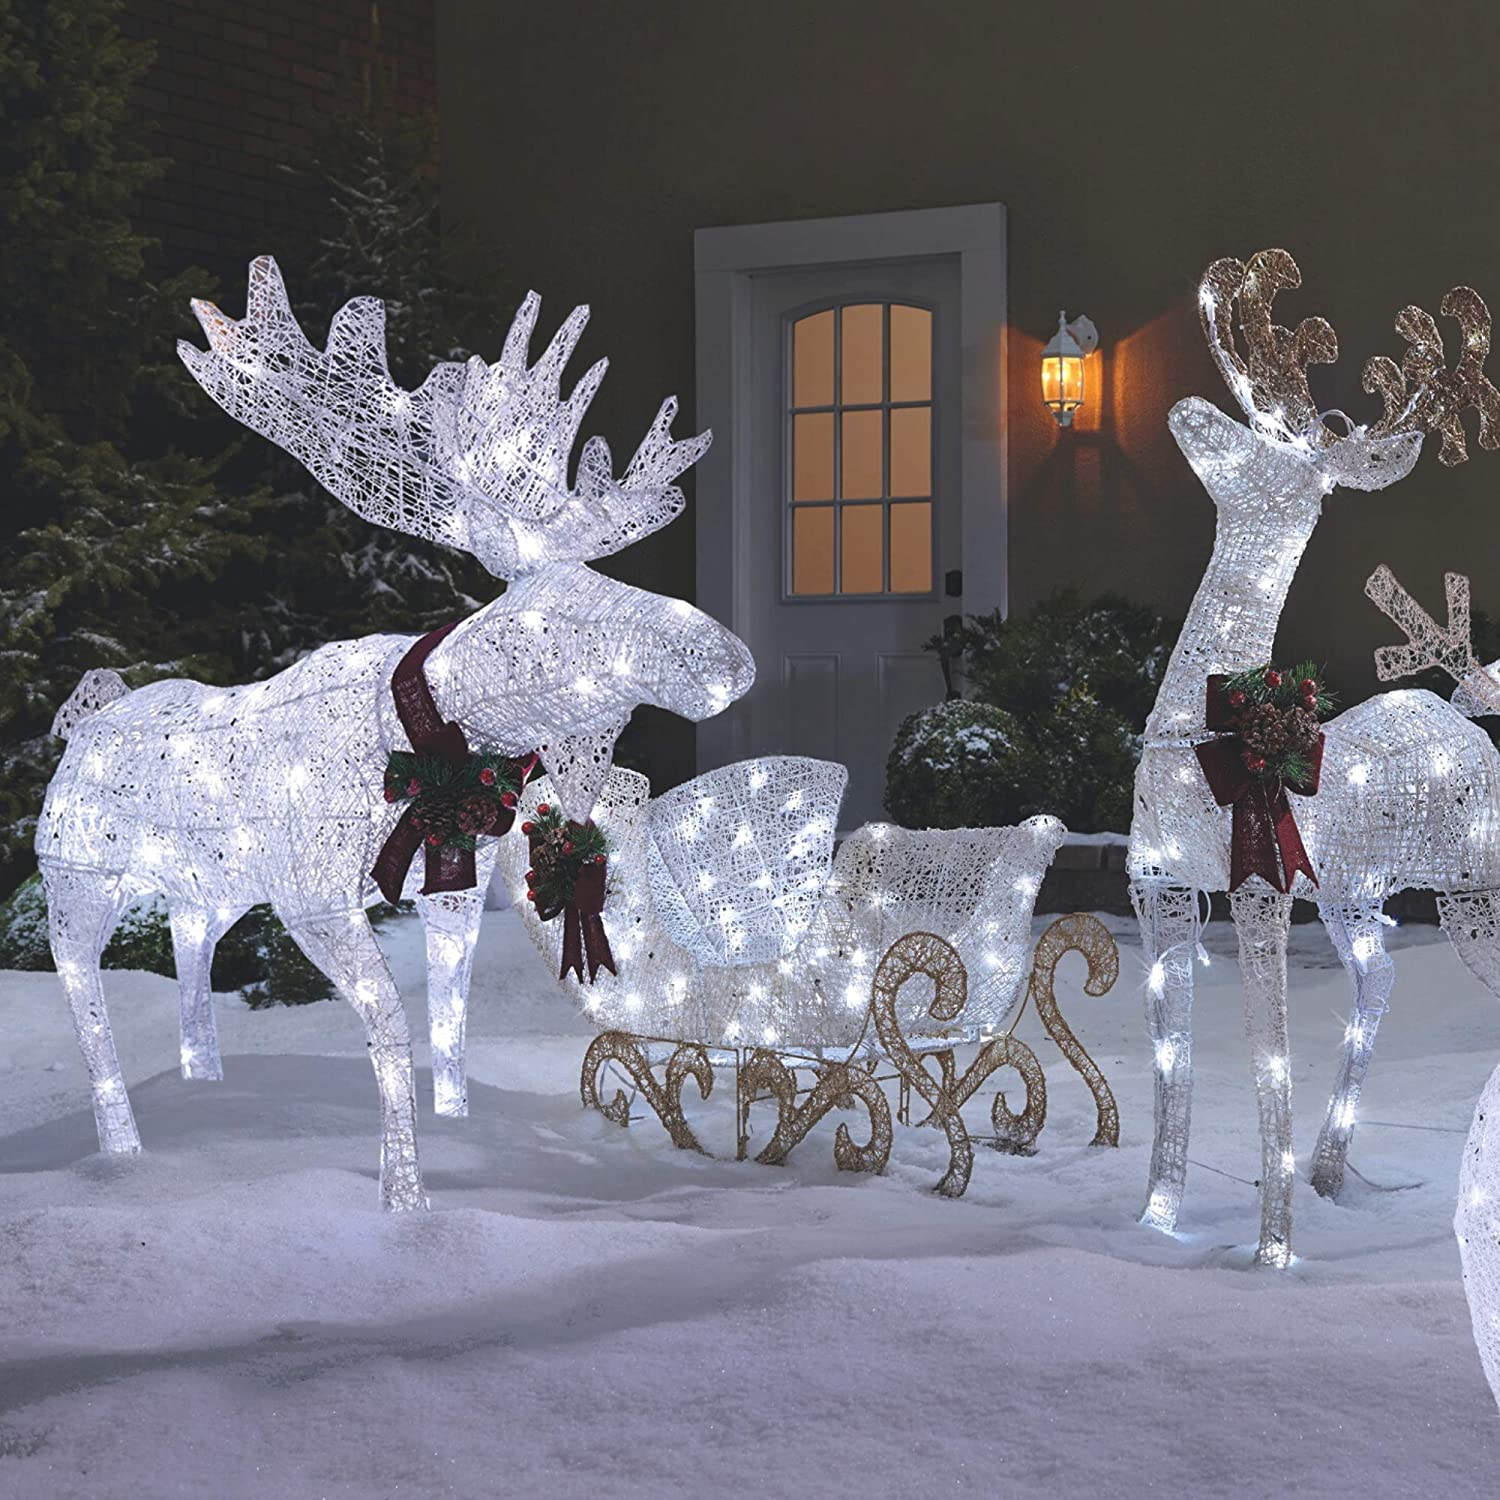 NOMA Pre-Lit LED Light Up Moose & Reindeer and Sleigh Set | Christmas Holiday Lawn Decor